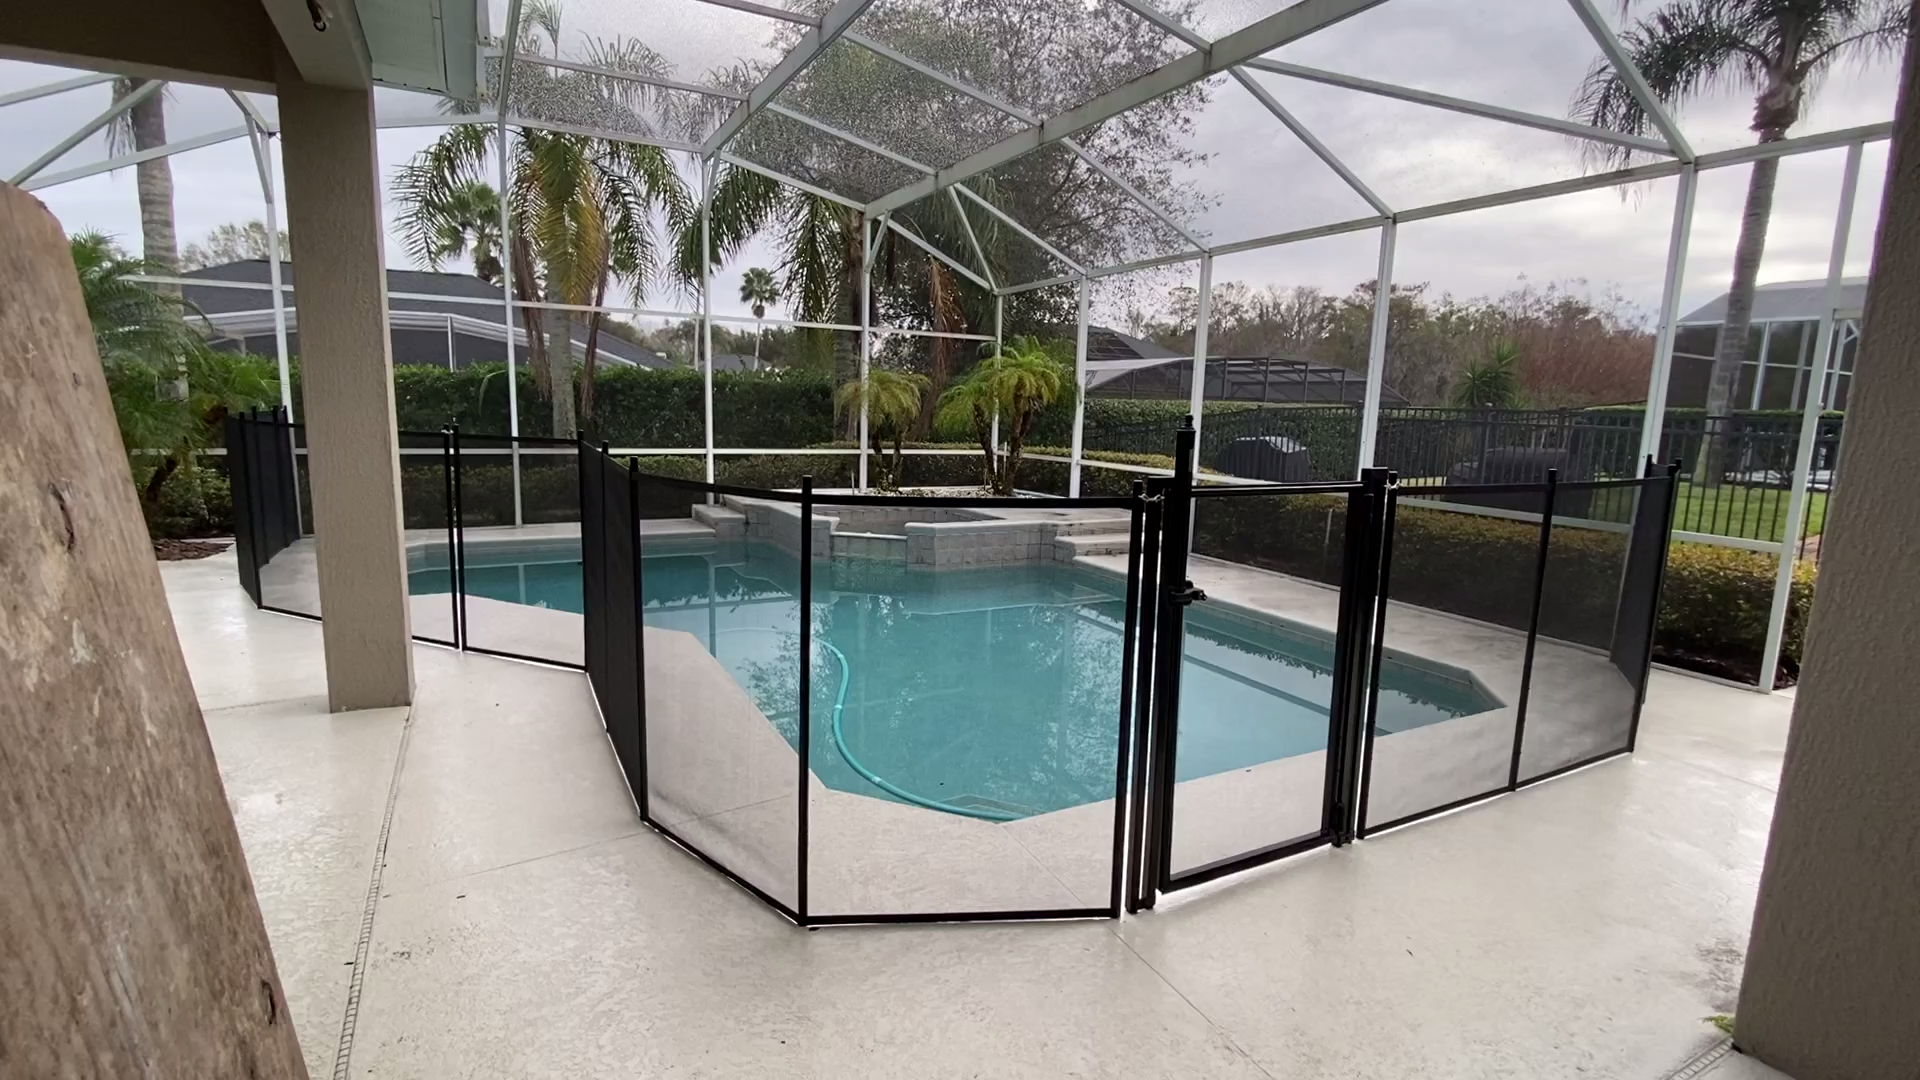 Pool Fence And Pool Gate Installed In Winter Springs Fl By Life Saver Pool Fence Of Central Florida Video In 2020 Pool Fence Pool Gate Florida Pool